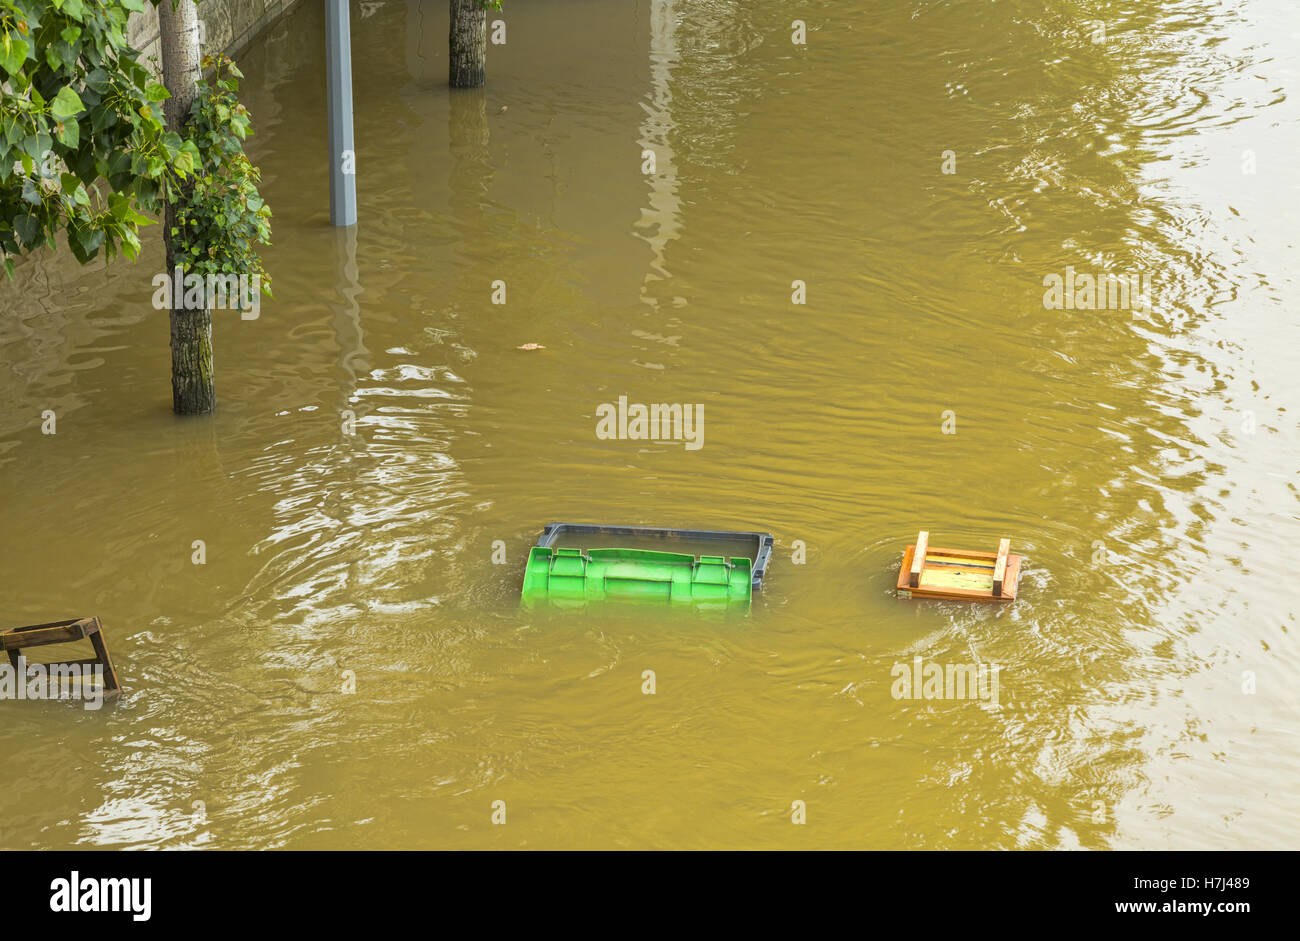 A garbage container and various wooden things are floating on the River Seine embankment after the flood - Stock Image